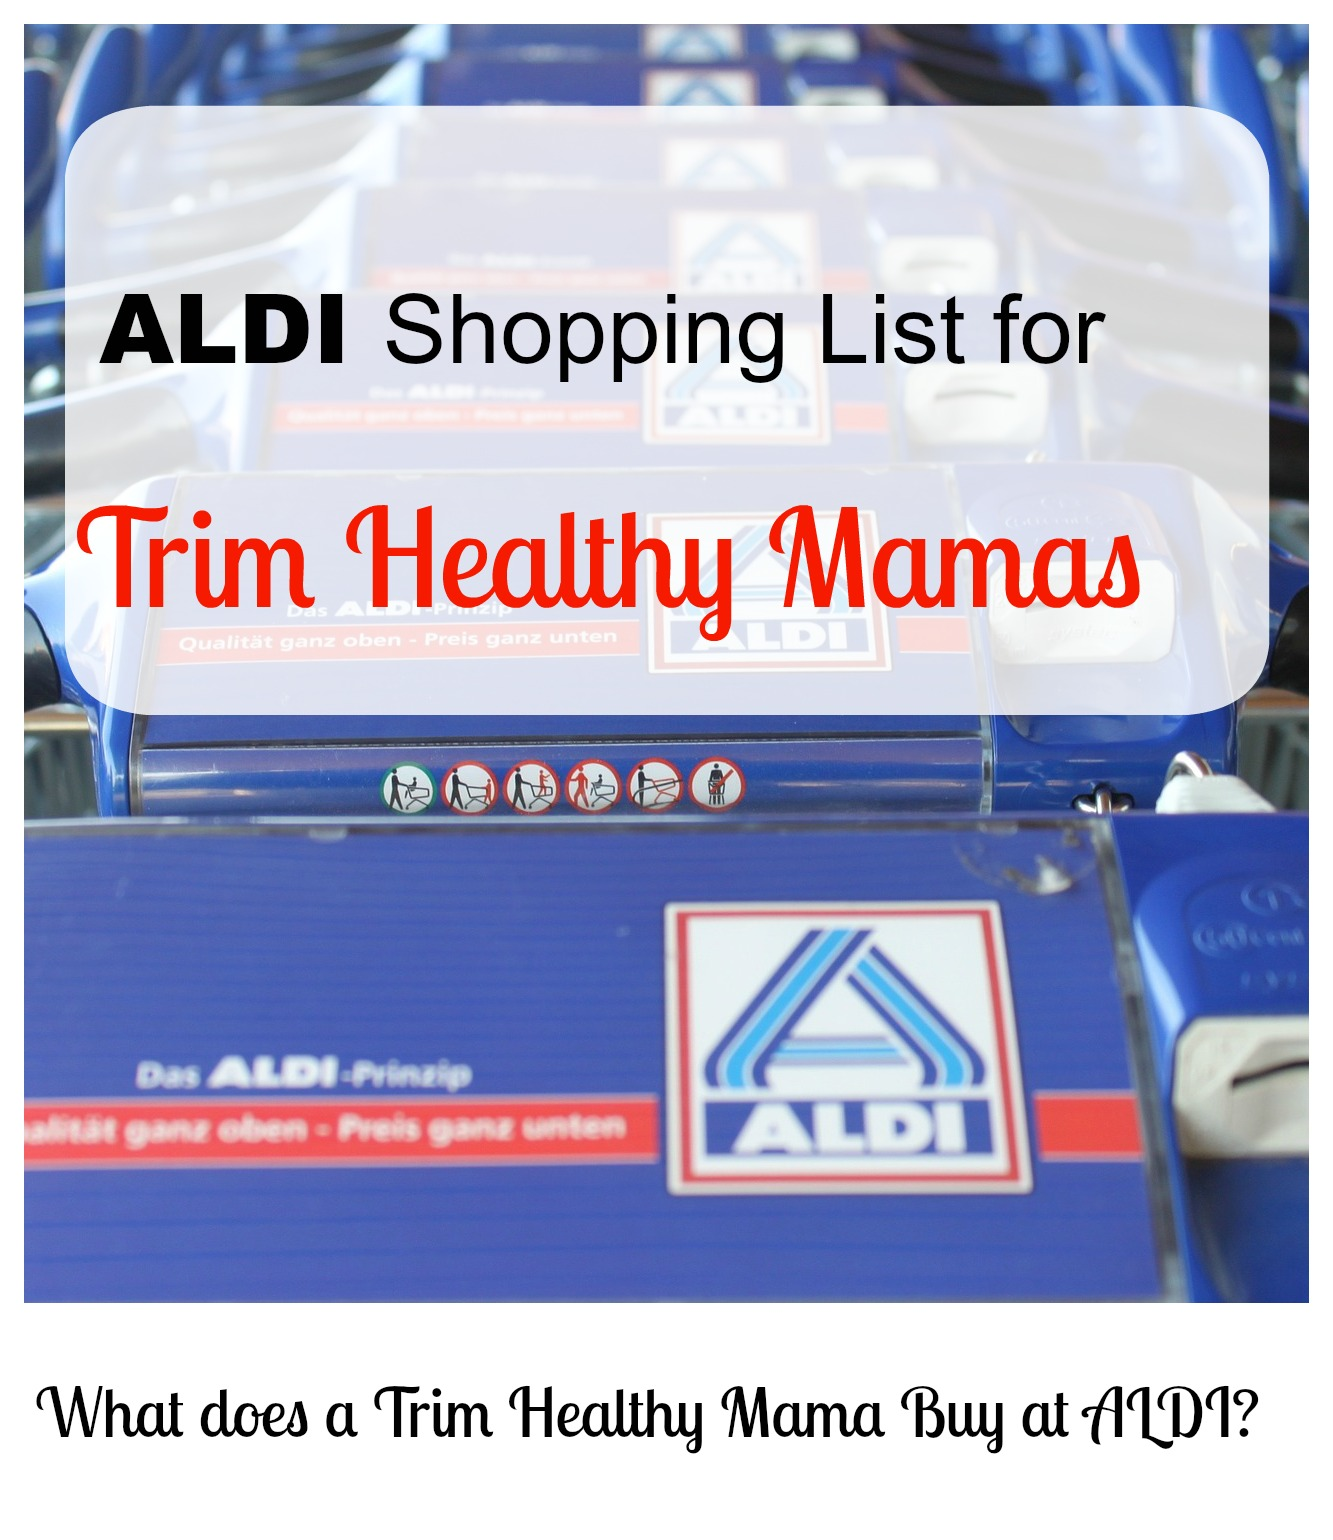 What does a Trim Healthy Mama Buy at ALDI?